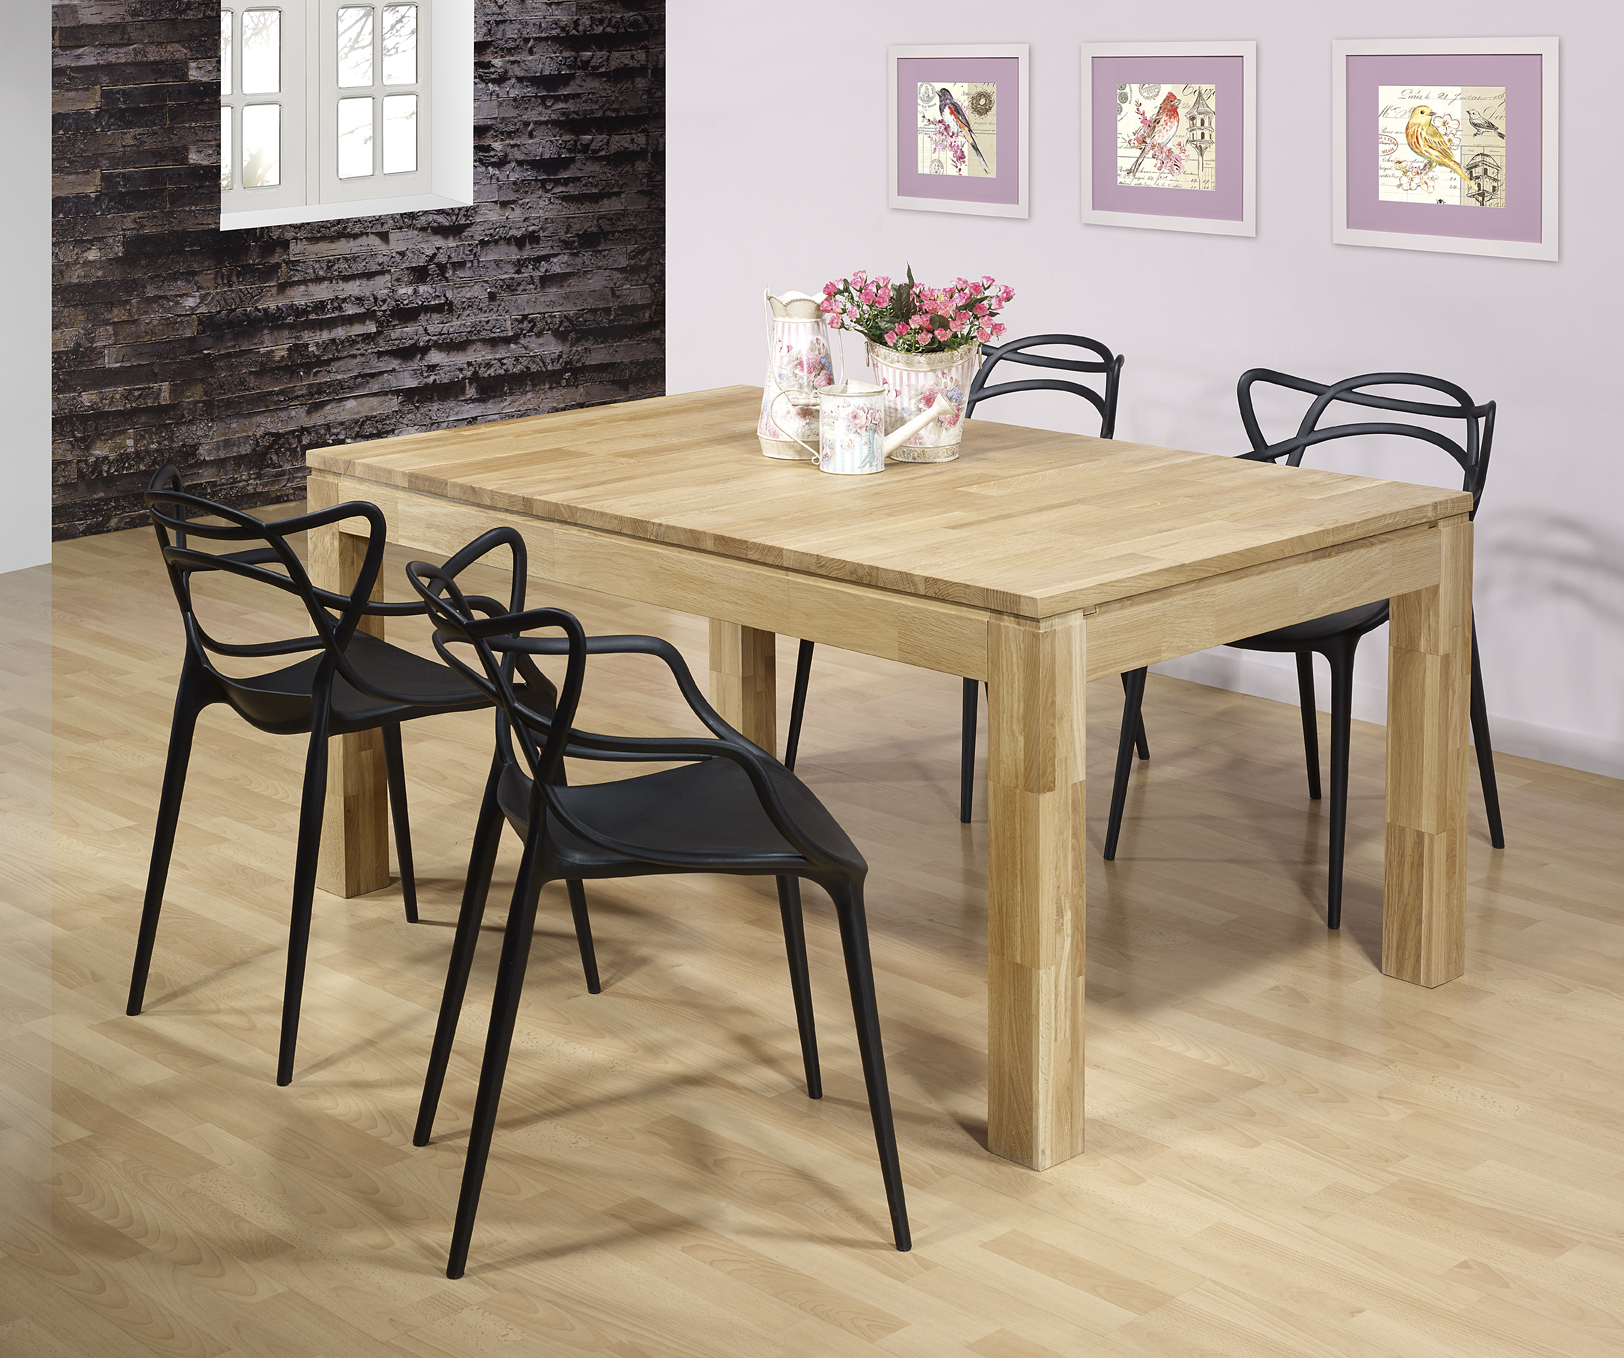 table de repas rectangulaire 160x100 ecolo en ch ne ligne contemporaine meuble en ch ne massif. Black Bedroom Furniture Sets. Home Design Ideas